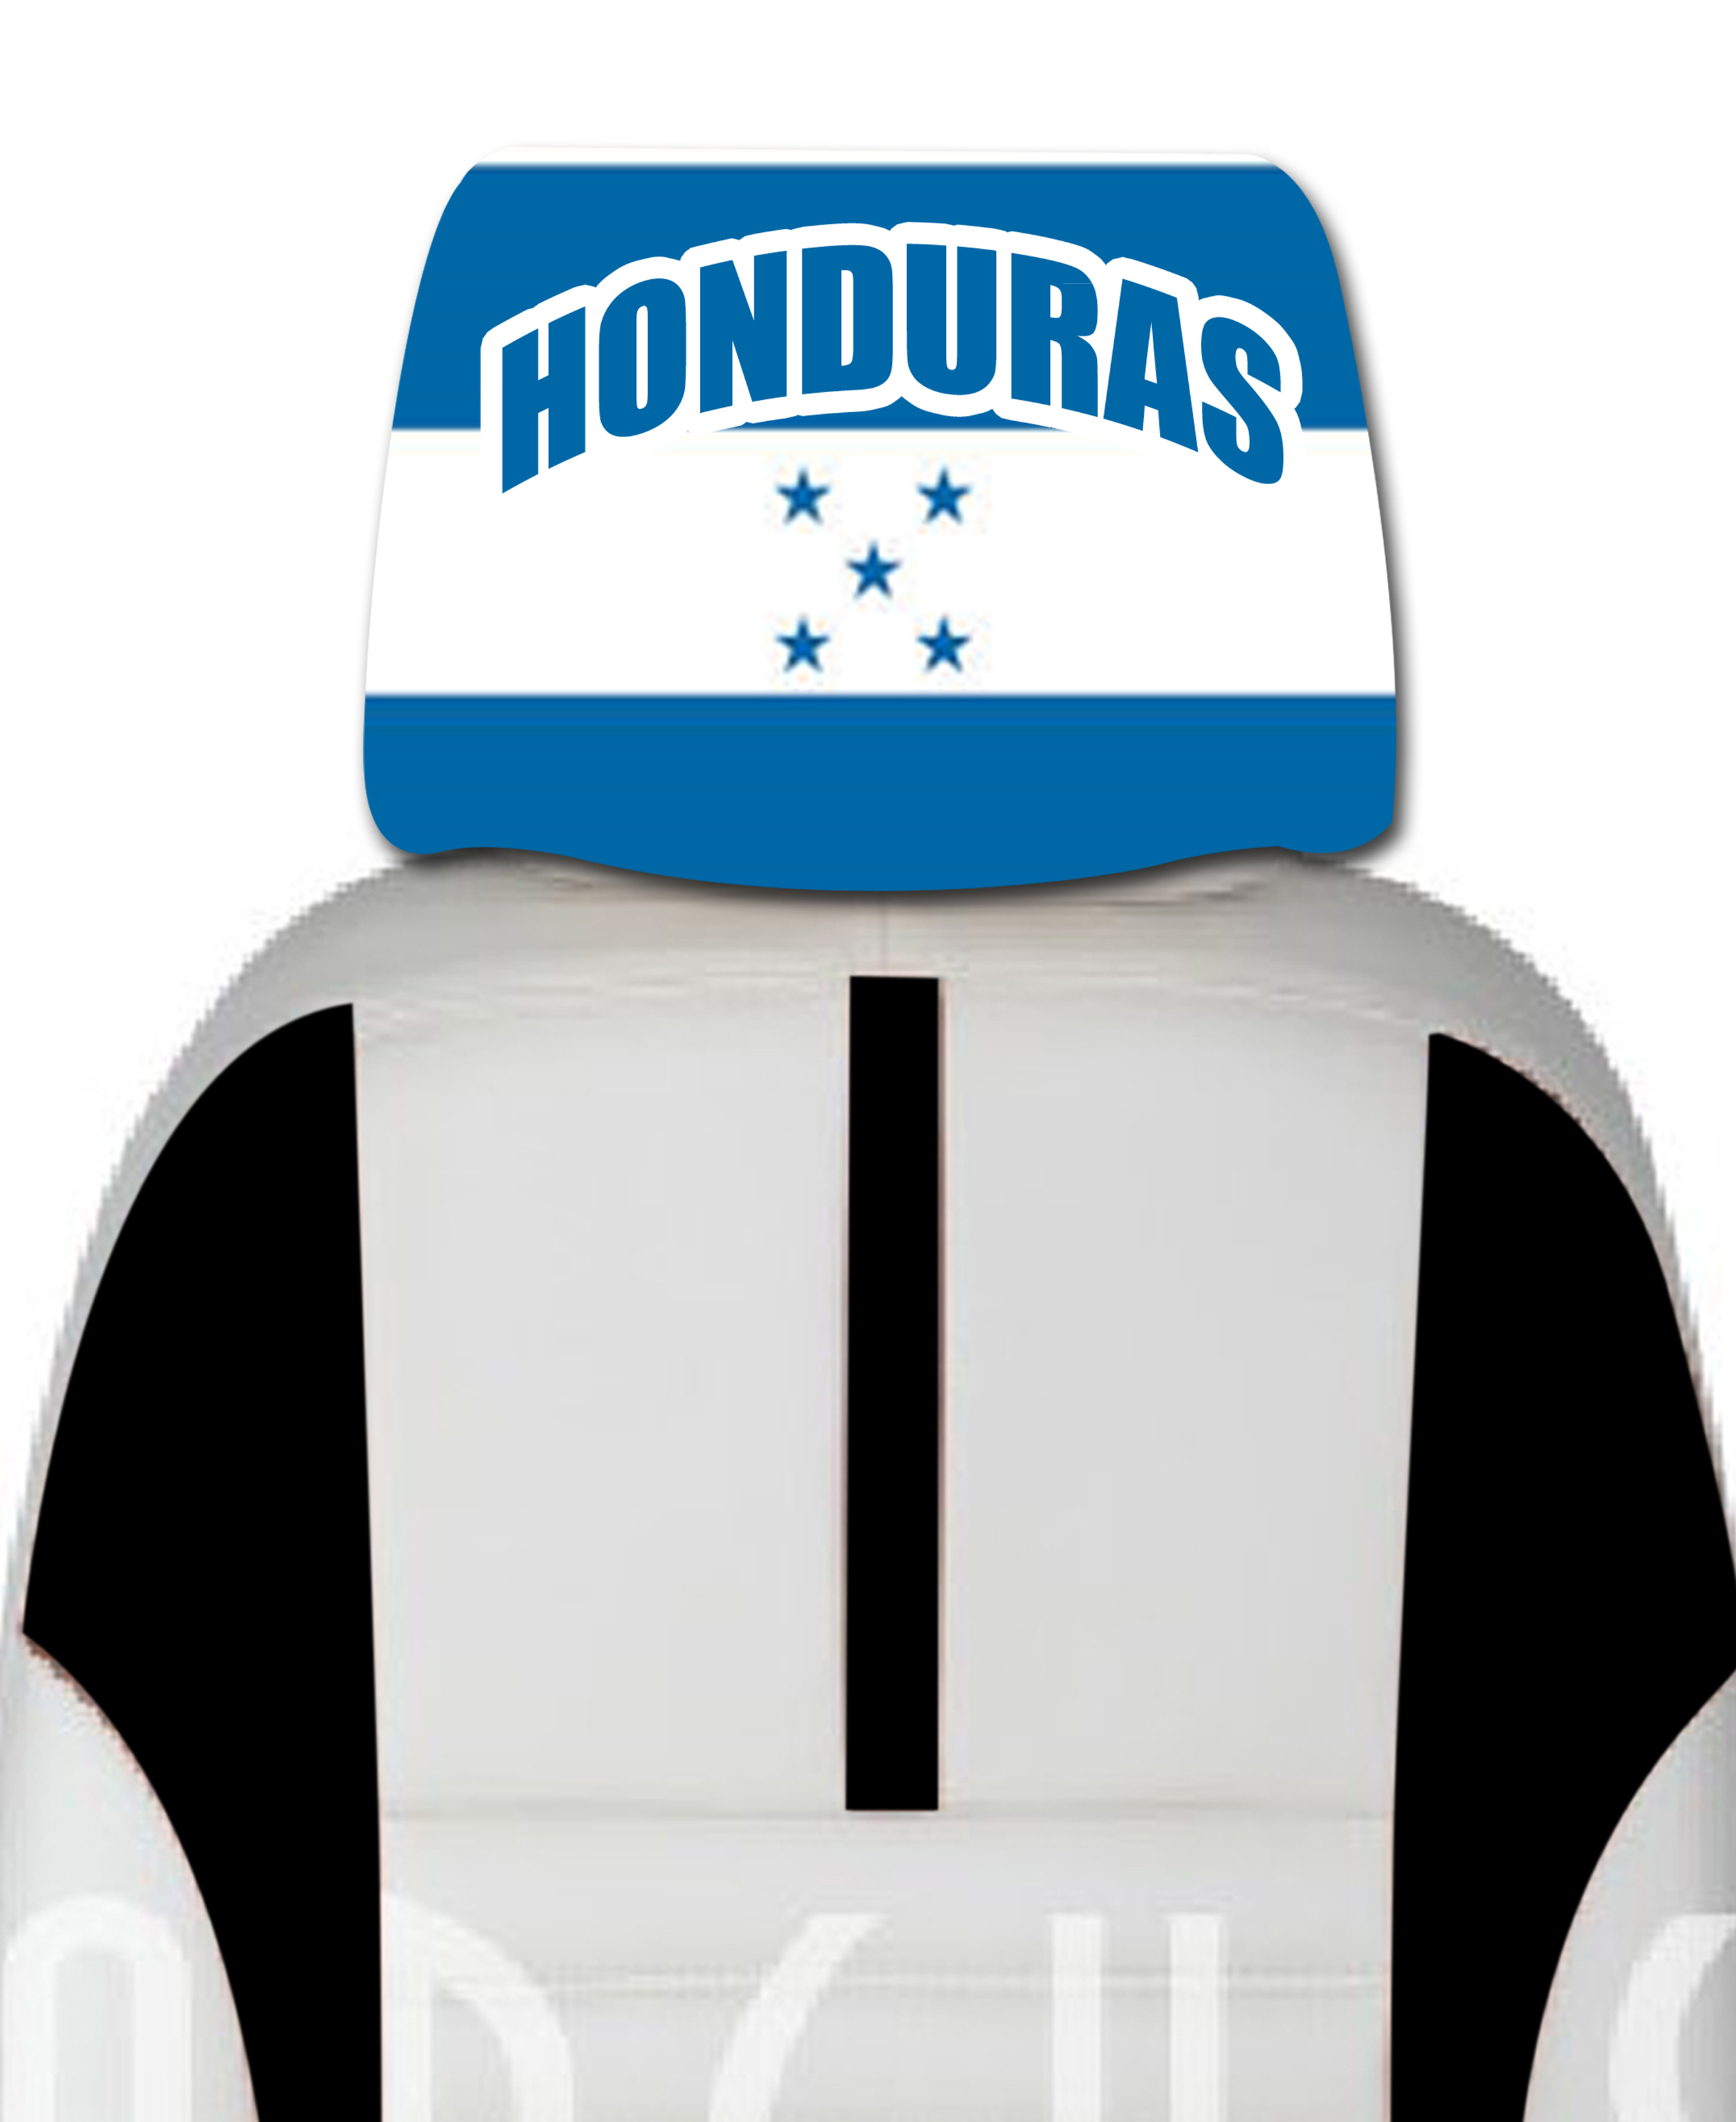 images/Headrest car cover seat for Honduras.